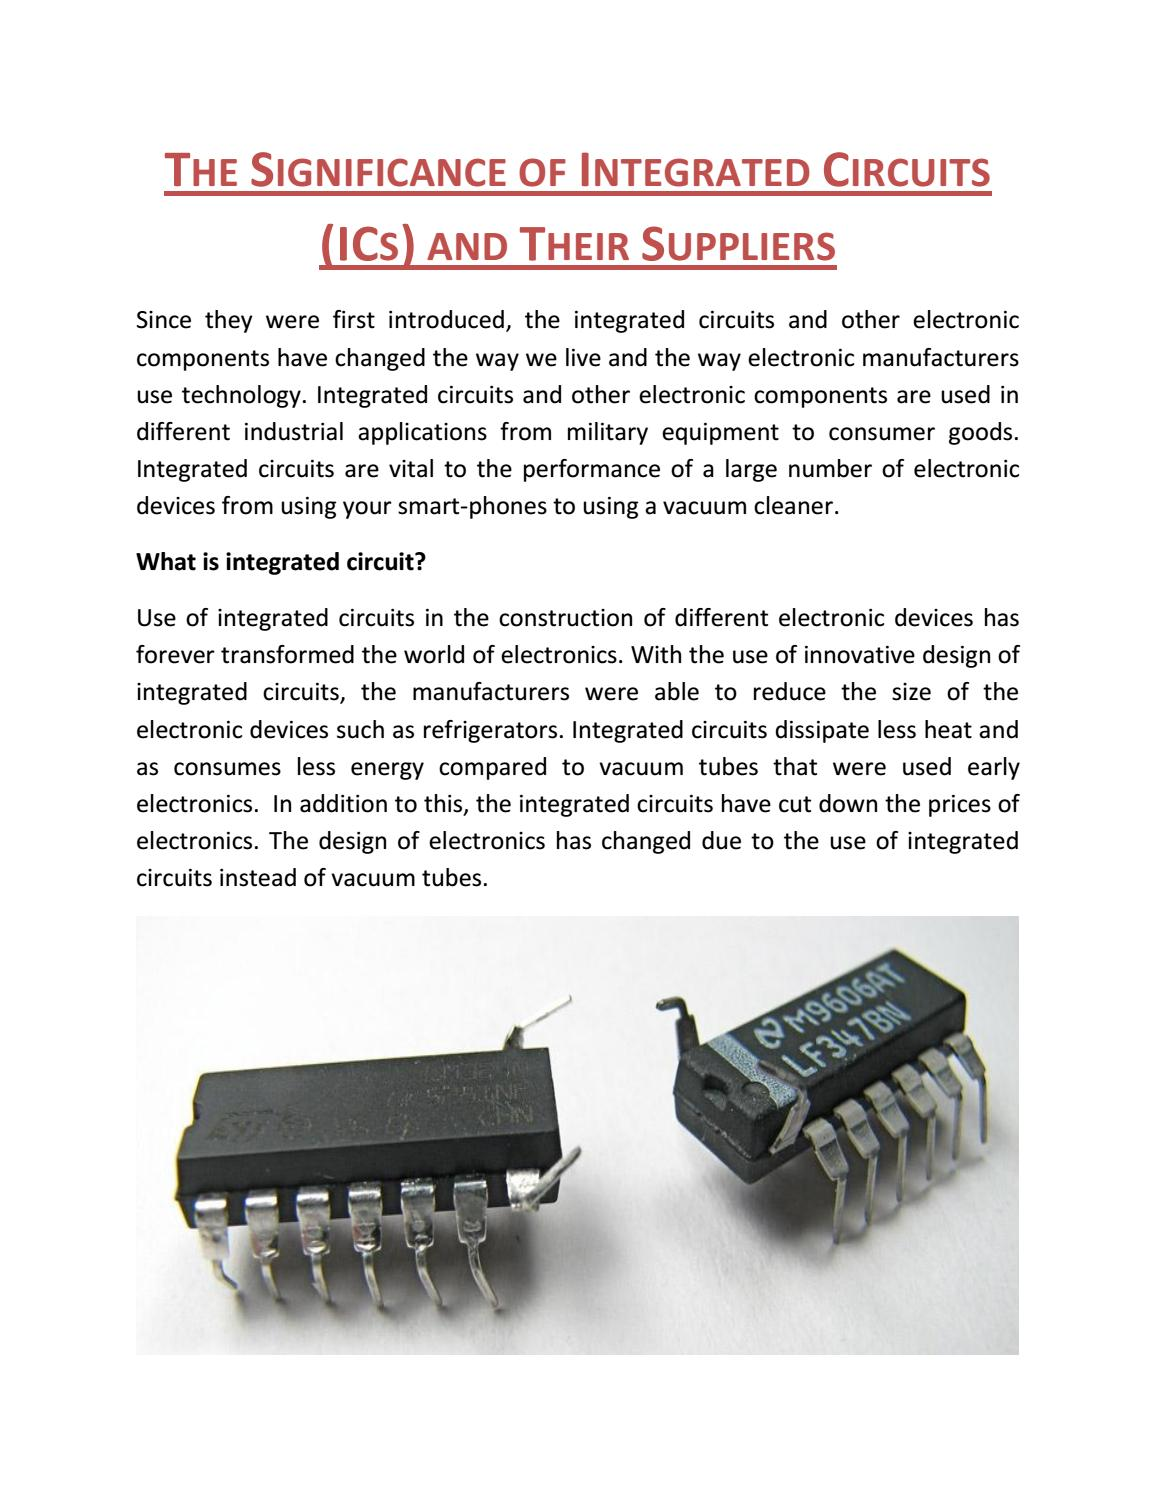 Manufacturing industrial integrated circuit electronic devices